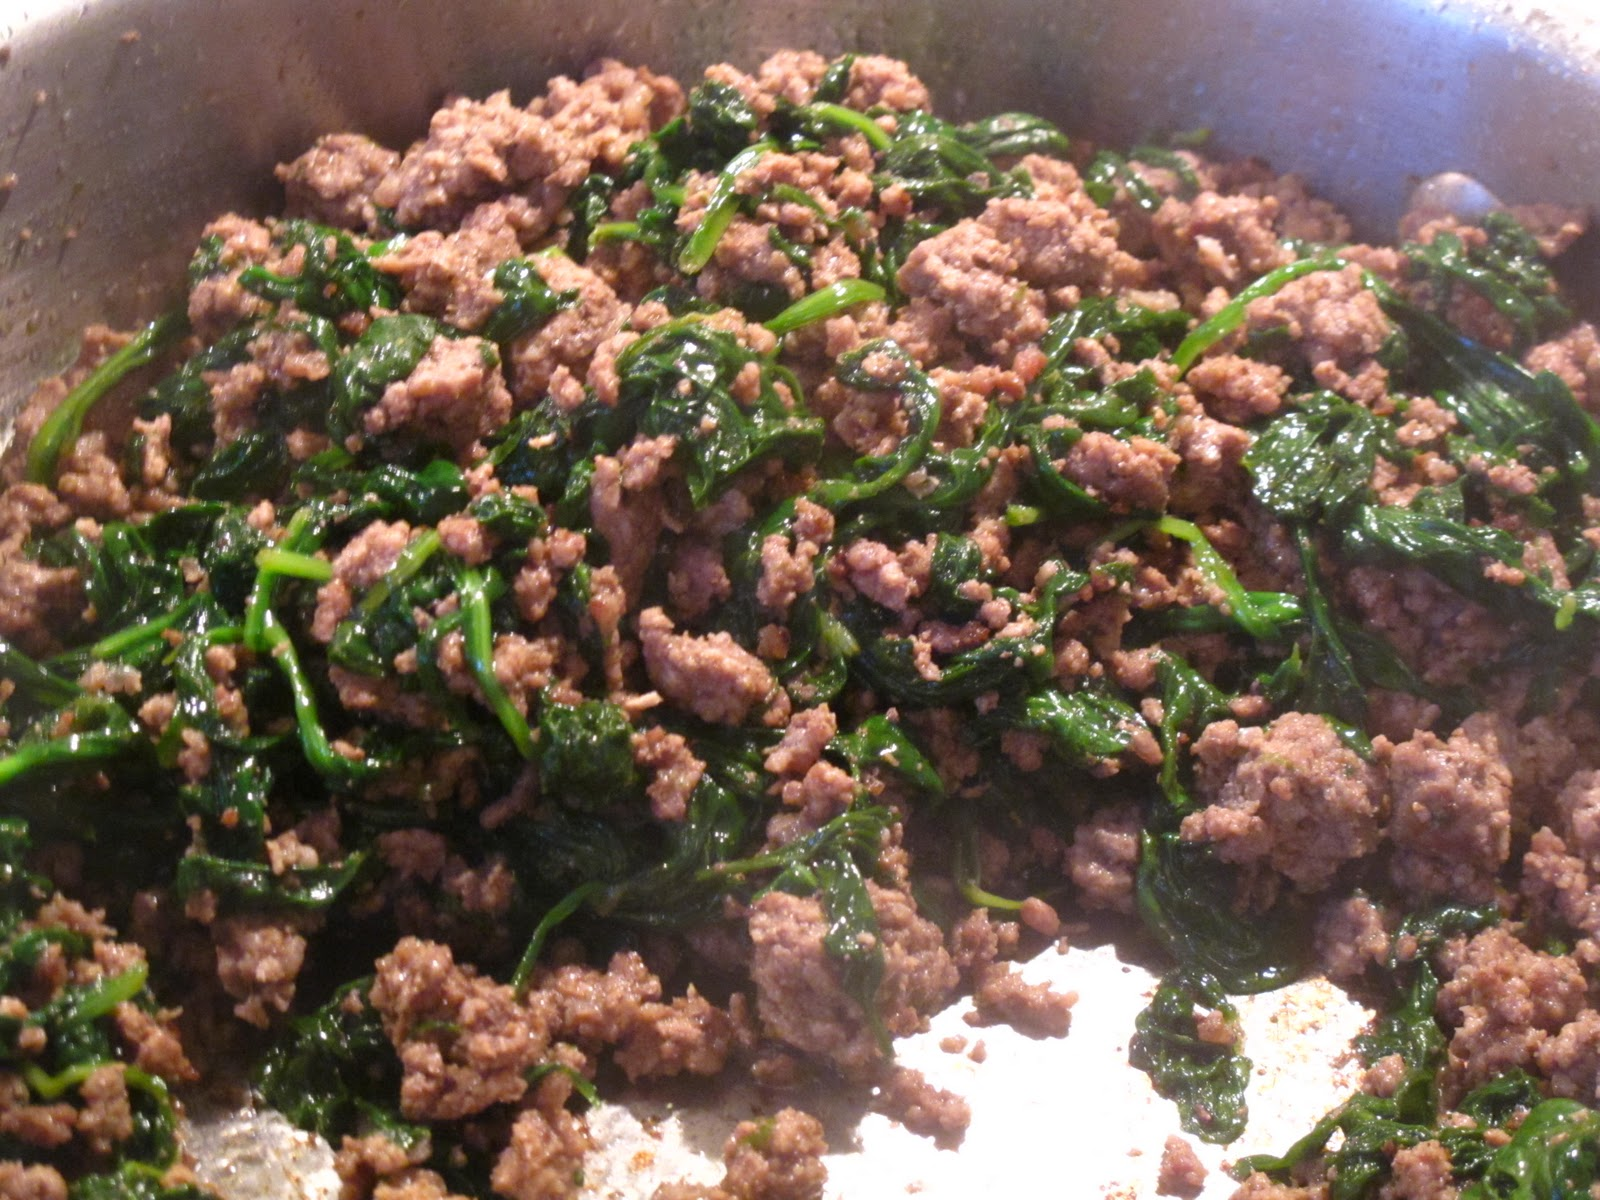 Enjoying Healthy Foods Ground Beef And Spinach